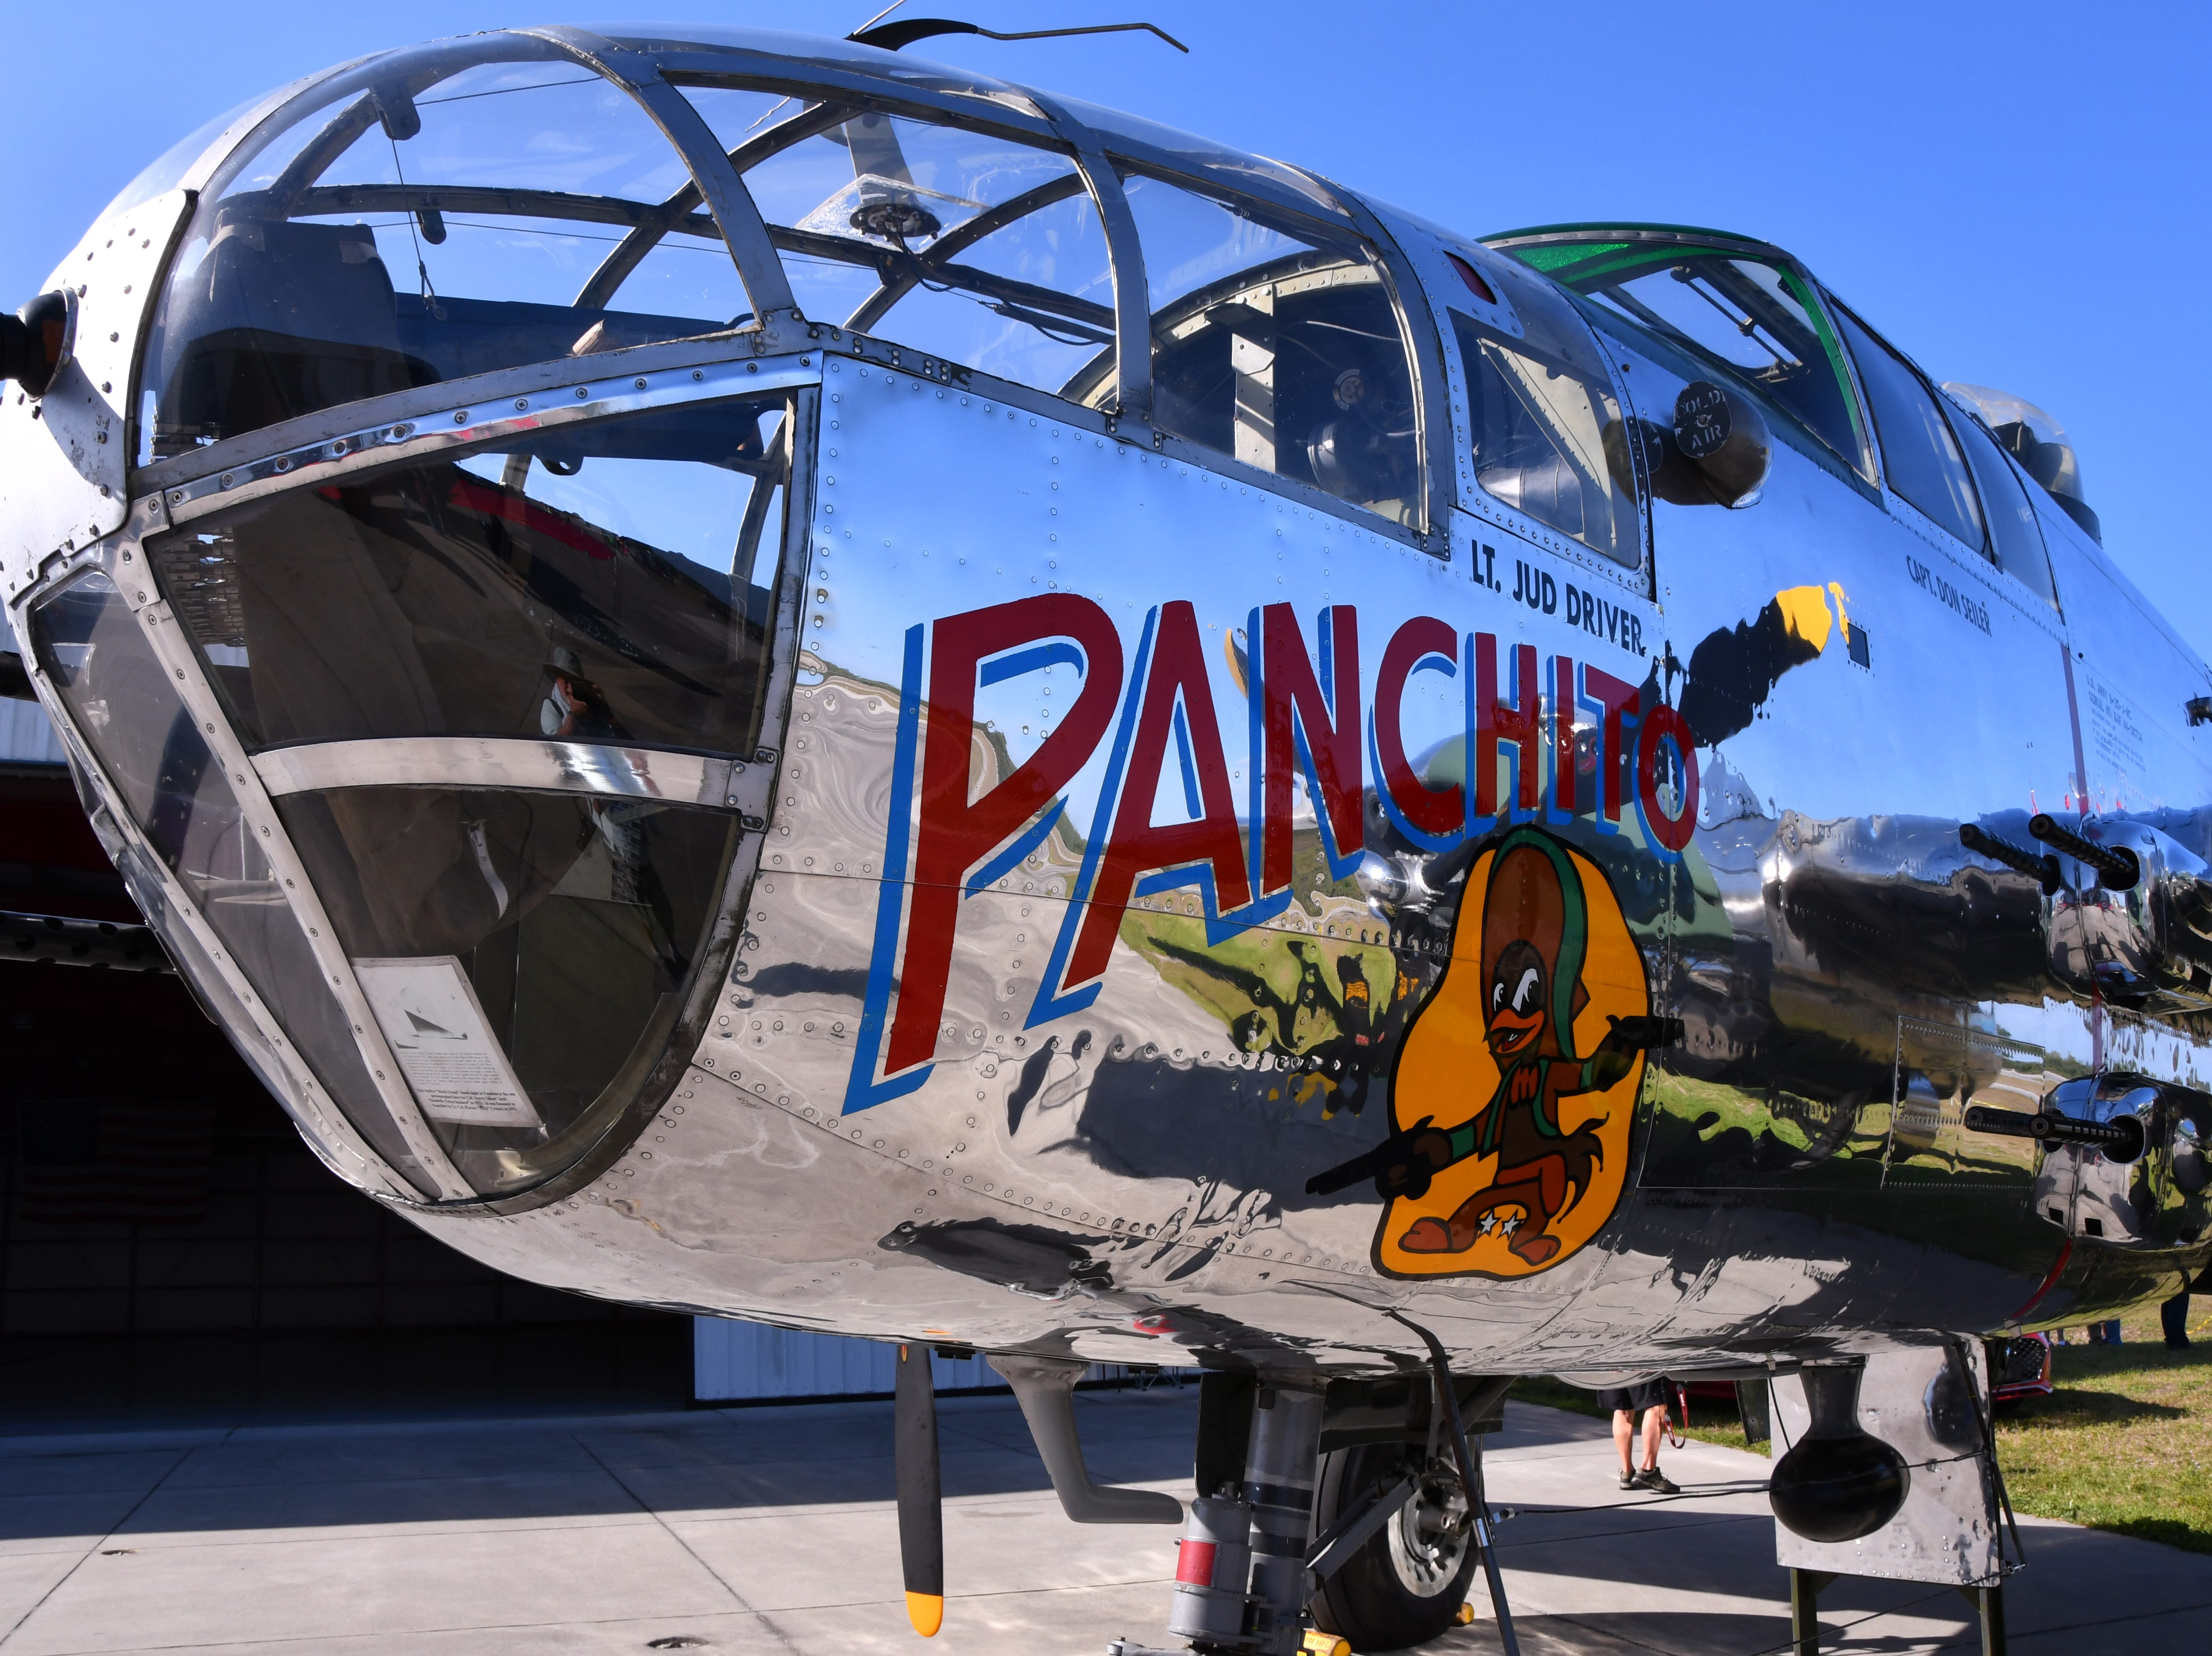 Pancbhito, a B-25 bomber on the tarmac at the Valiant Air Command Musuem. The 2019 Space Coast Warbird Air Show held their media day Thursday, promoting the Air Show that runs Friday, Saturday and Sunday at Space Coast Regional Airport in Titusville, with a Friday afternoon and evening show with fireworks, and shows Saturday and Sunday afternoon.